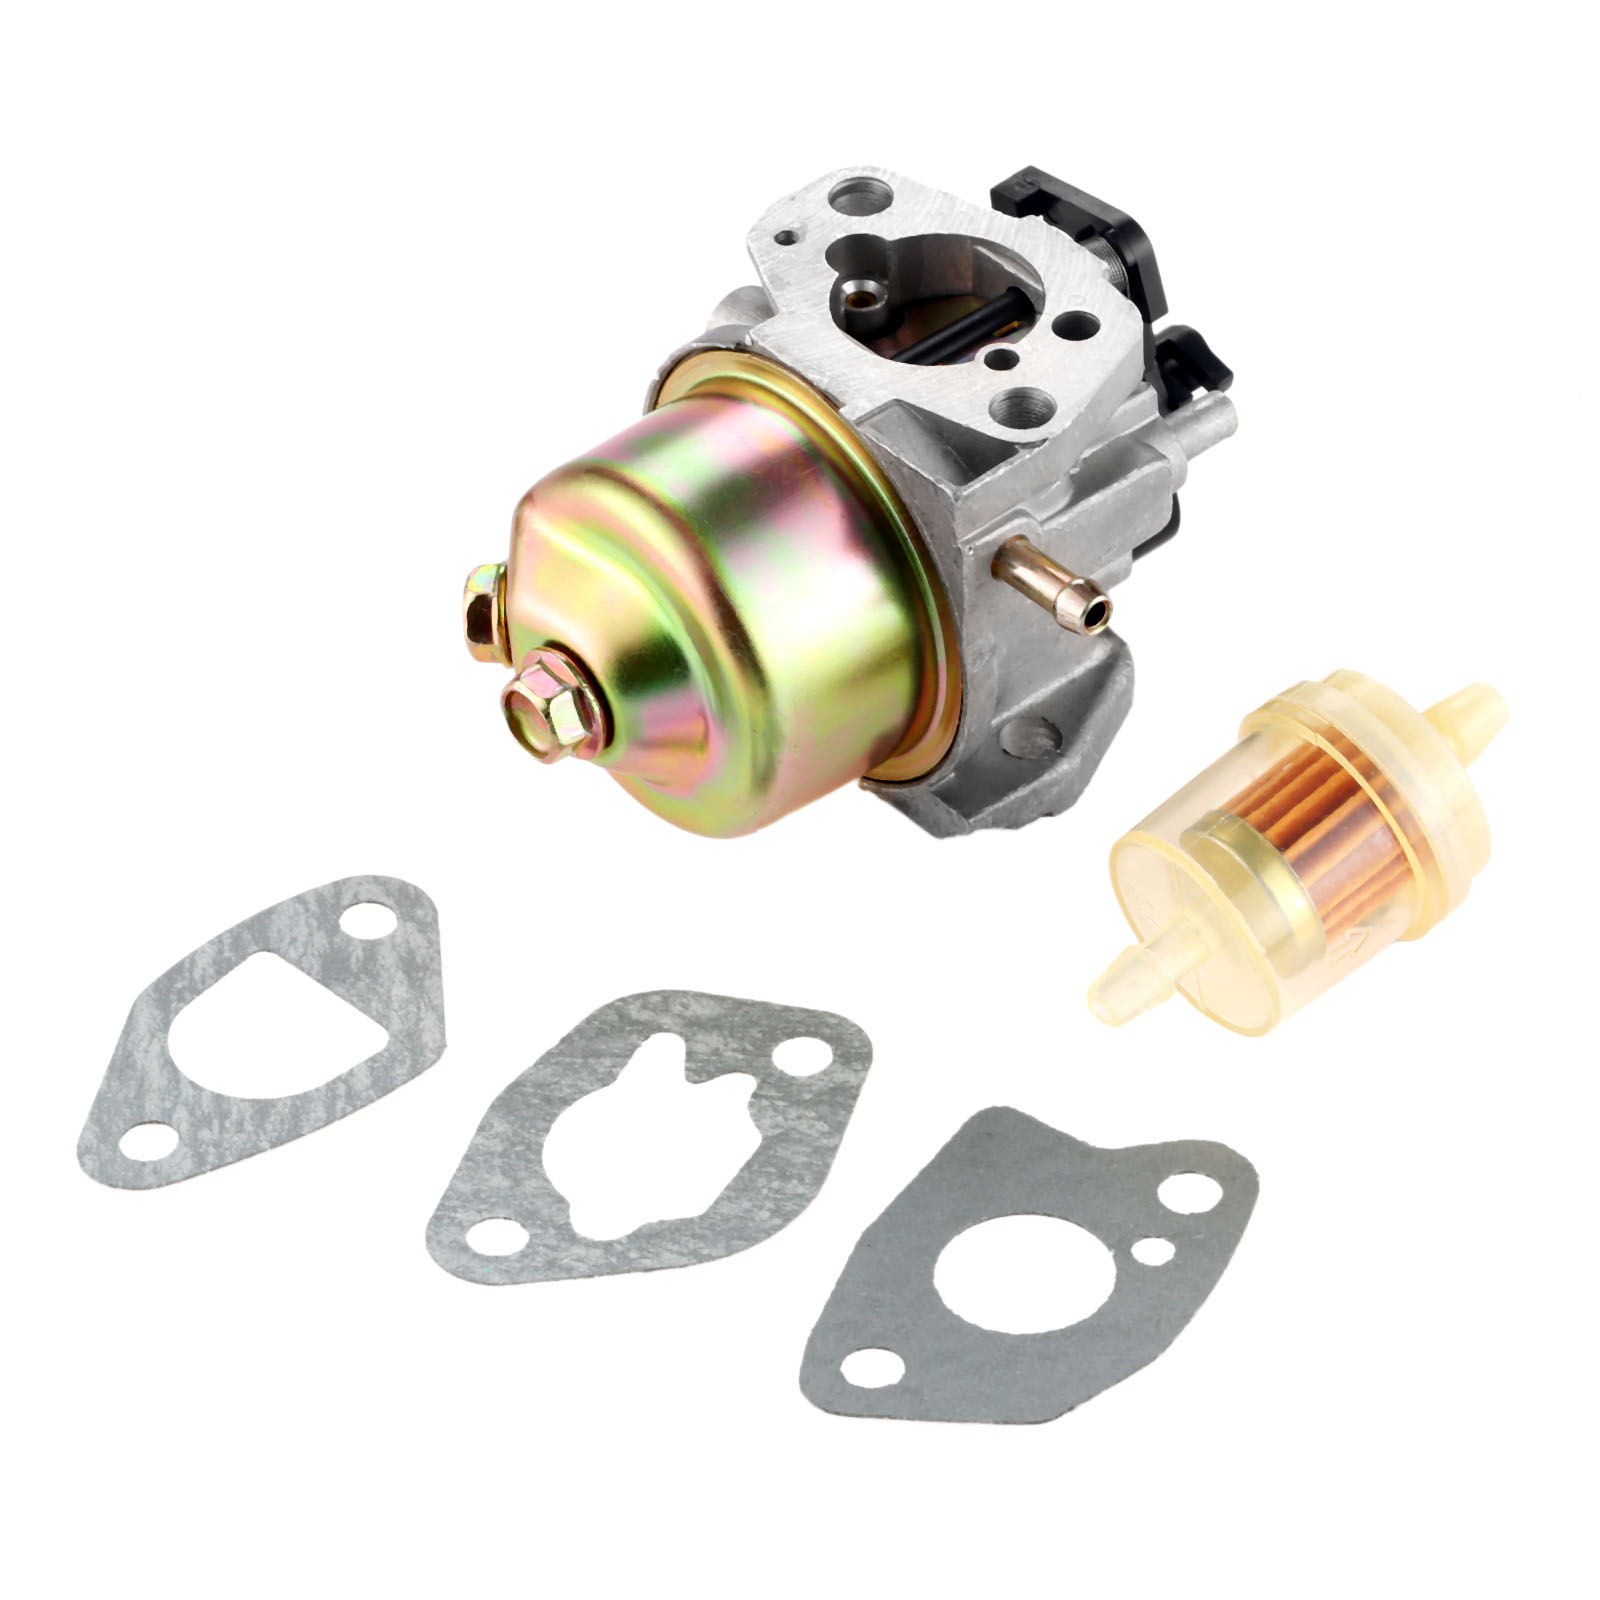 hight resolution of dreld carburetor with carburetor gasket fuel filter for mtd cub cadet troy bilt lawn mower engines 951 10310 751 10310 in lawn mower from tools on